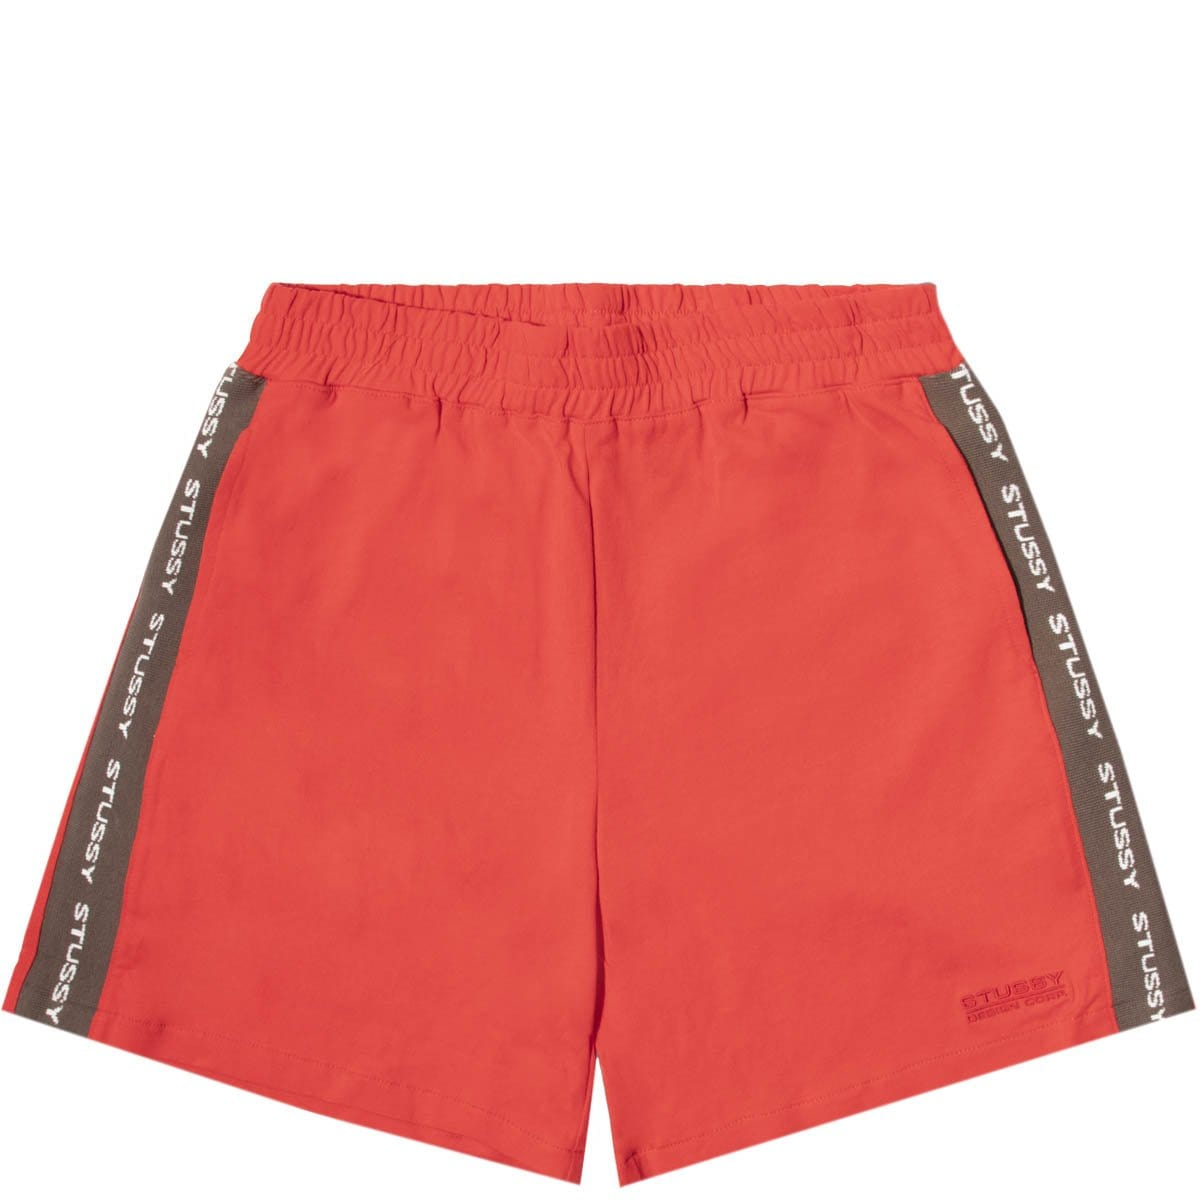 Stüssy Bottoms WOMEN'S RIB LOGO SHORT